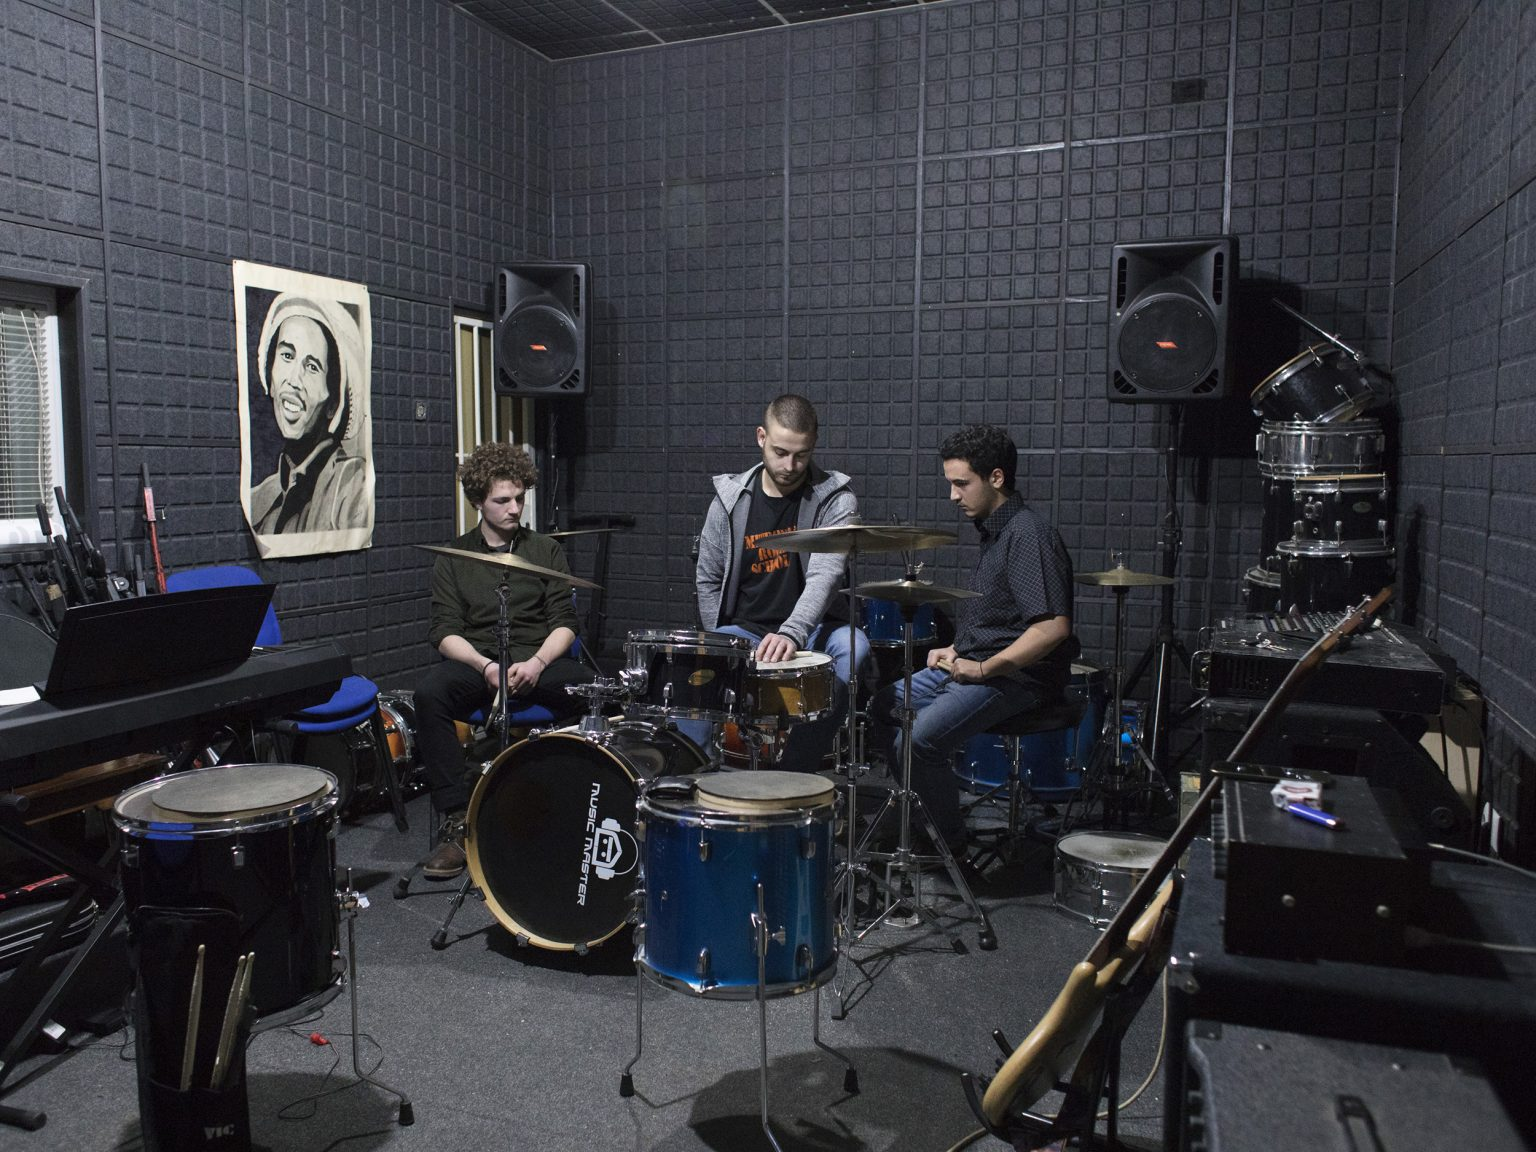 """Filip (center), drum teacher from Northern Mitrovicë / Kosovska Mitrovica and Dardan and Aron, students from South Mitrovicë / Kosovska Mitrovica, practicing at Mitrovica Rock school. The school started in 2008 with a summer school in Skopje by """"Musicians Without Borders"""" and CBM. In 2011, the school became an NGO and the first mixed band, called """"The ArTchitects"""", with both Serbian and Albanian musicians, was created. Today the are 7 active mixed bands."""